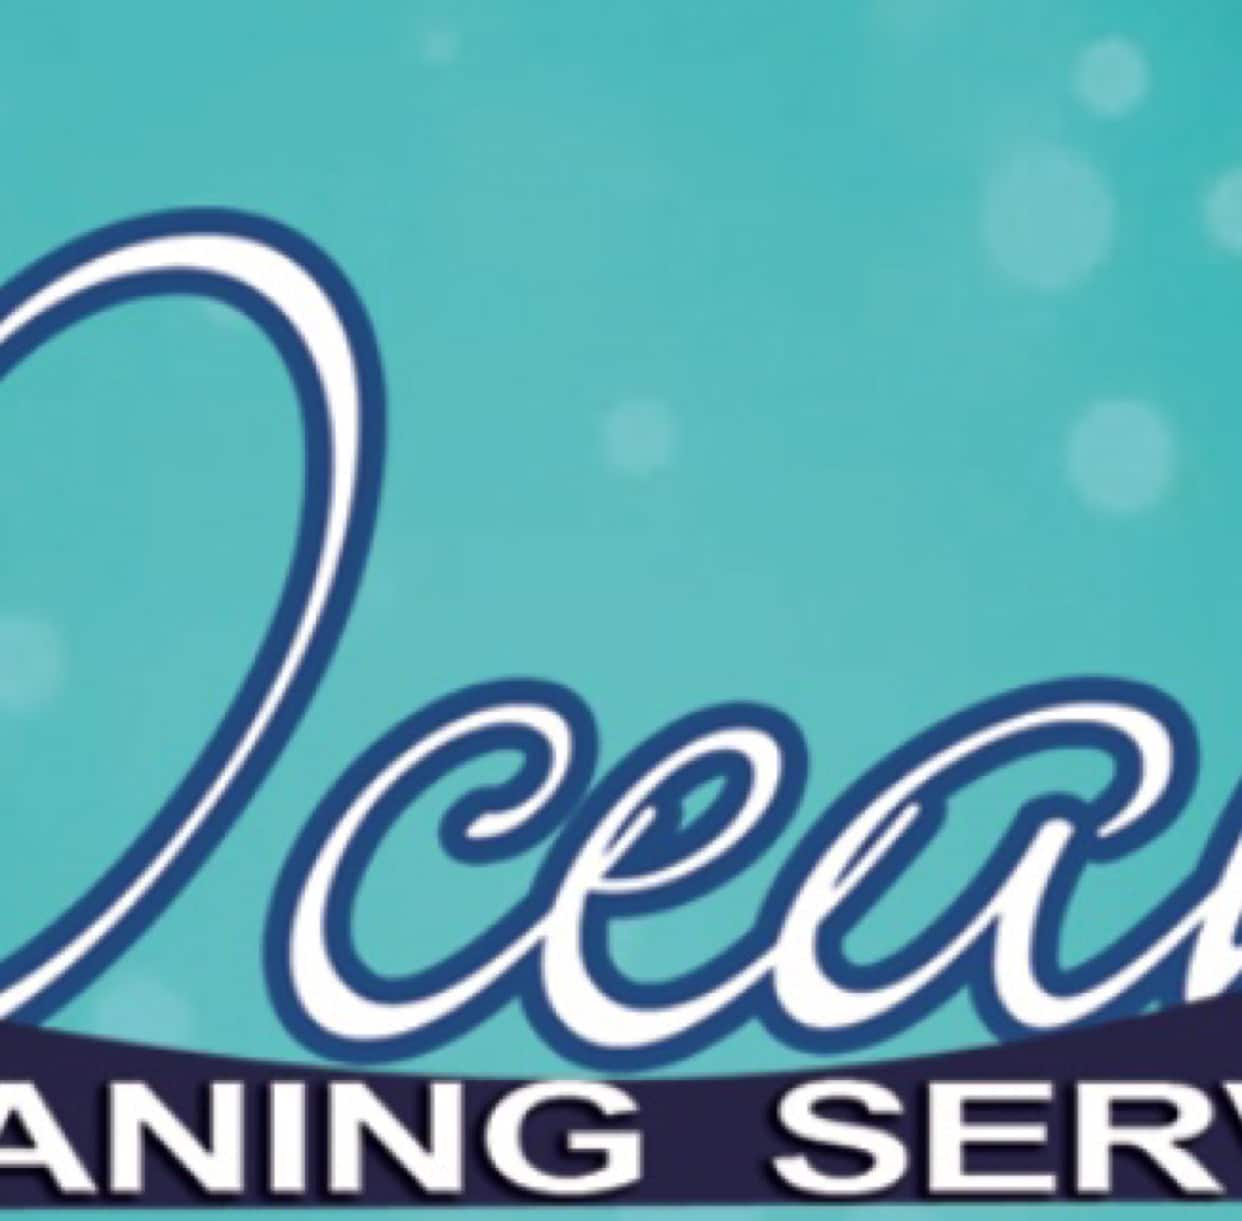 The Ocean Cleaning Services